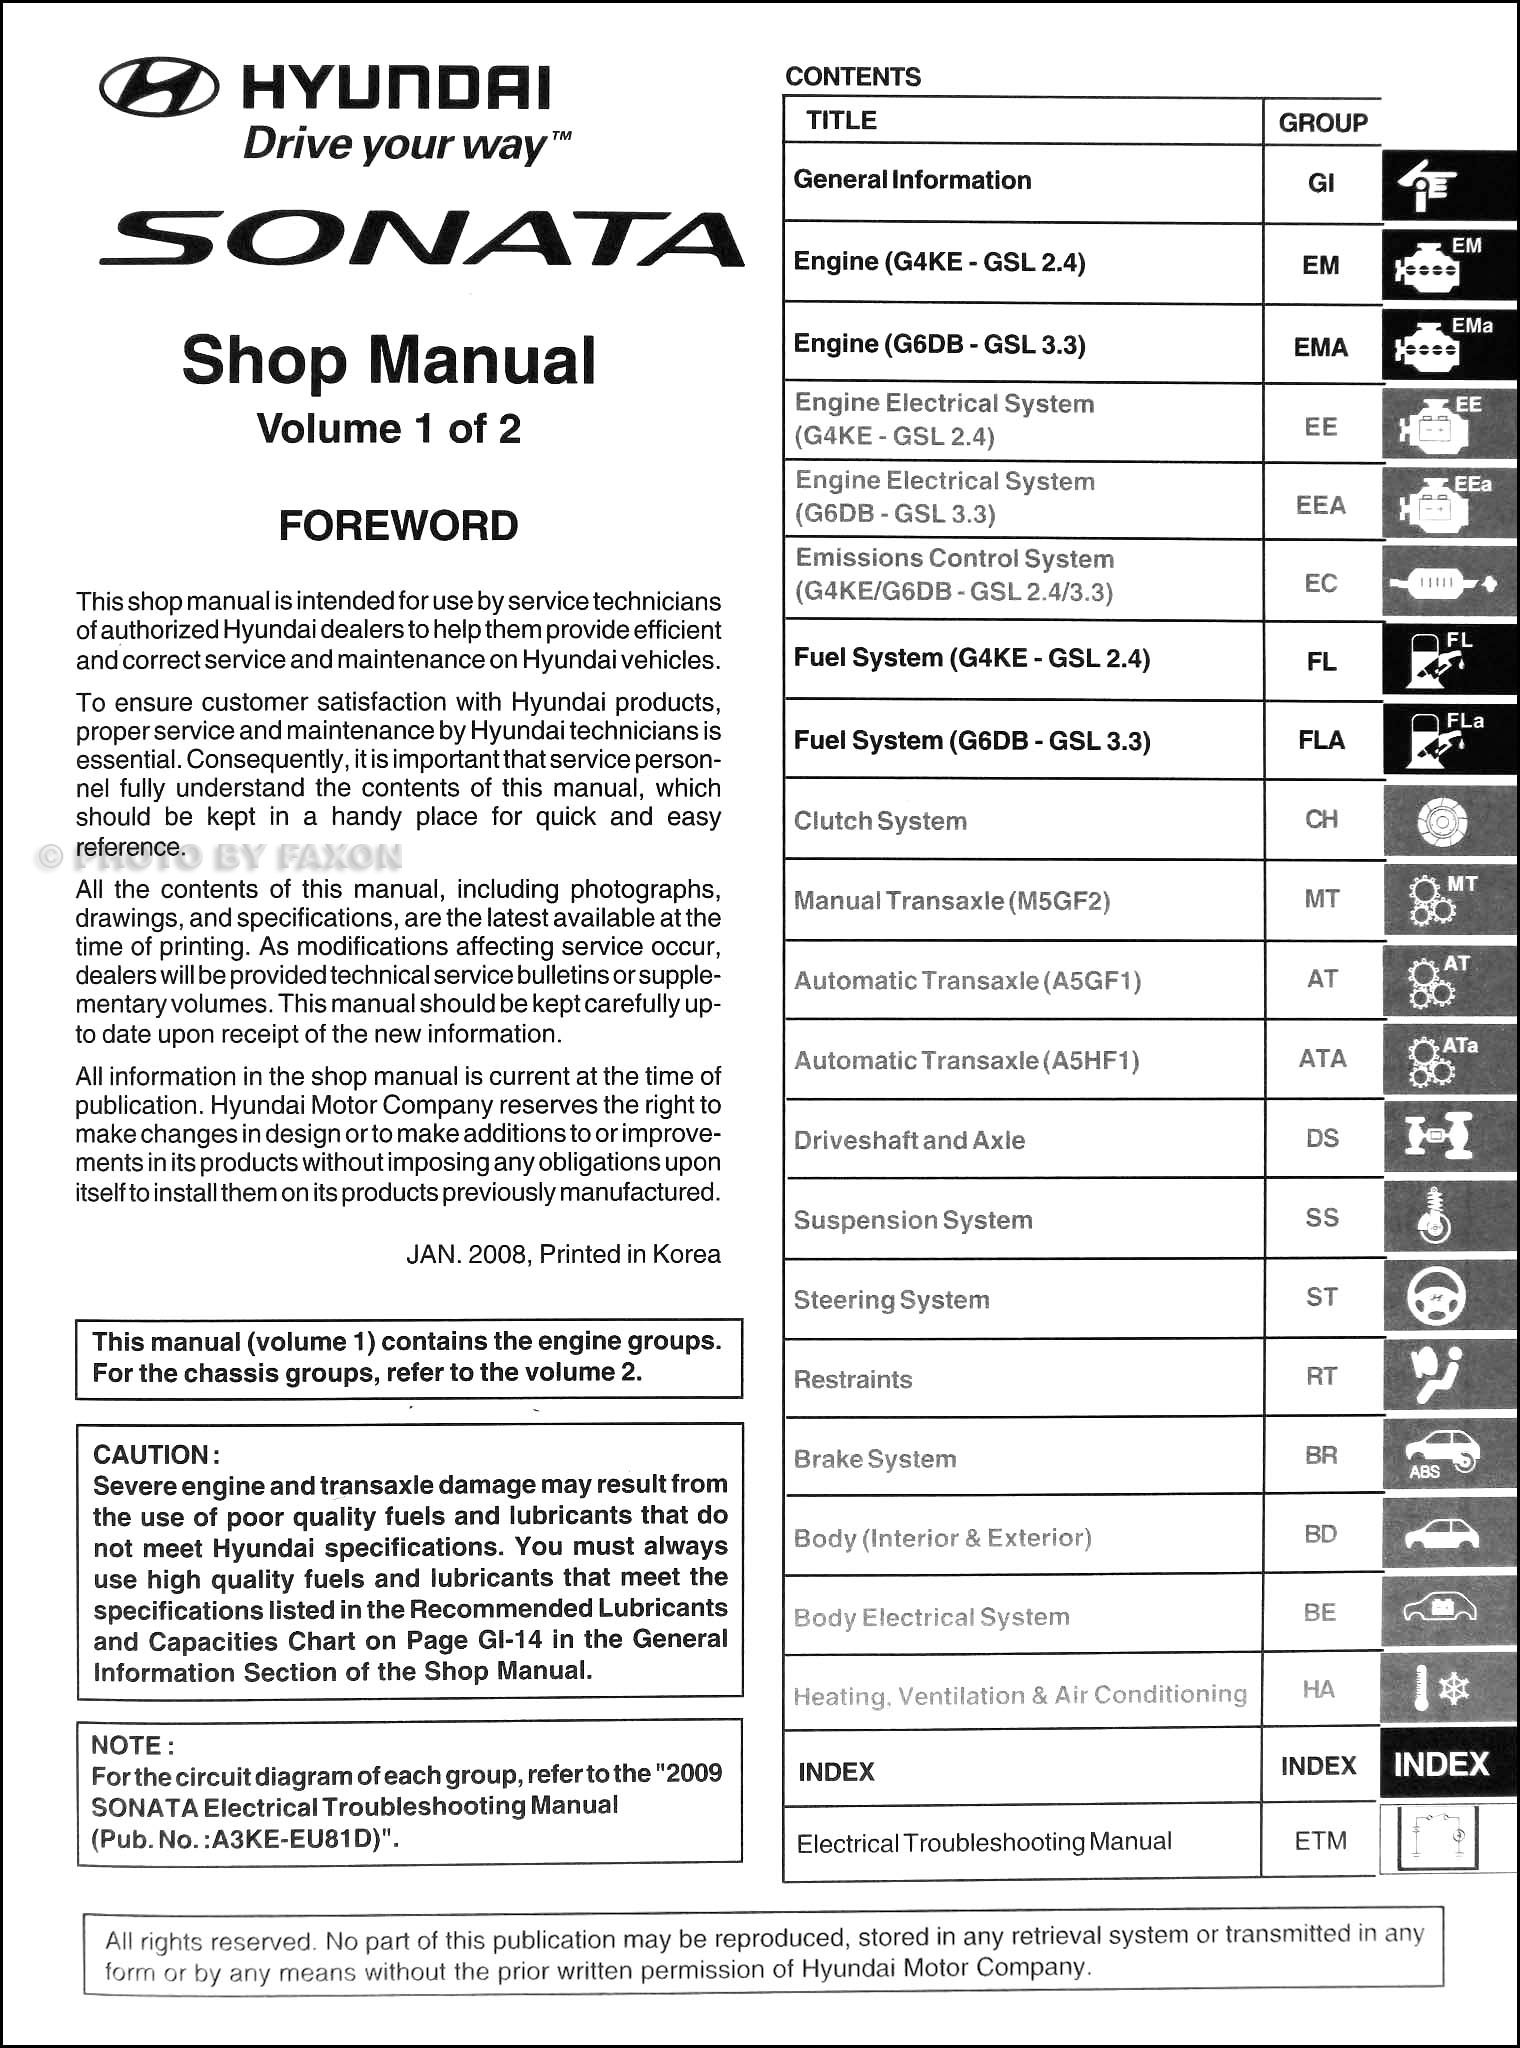 2009 Hyundai Sonata Shop Manual 2 Volume Set Original · Table of Contents